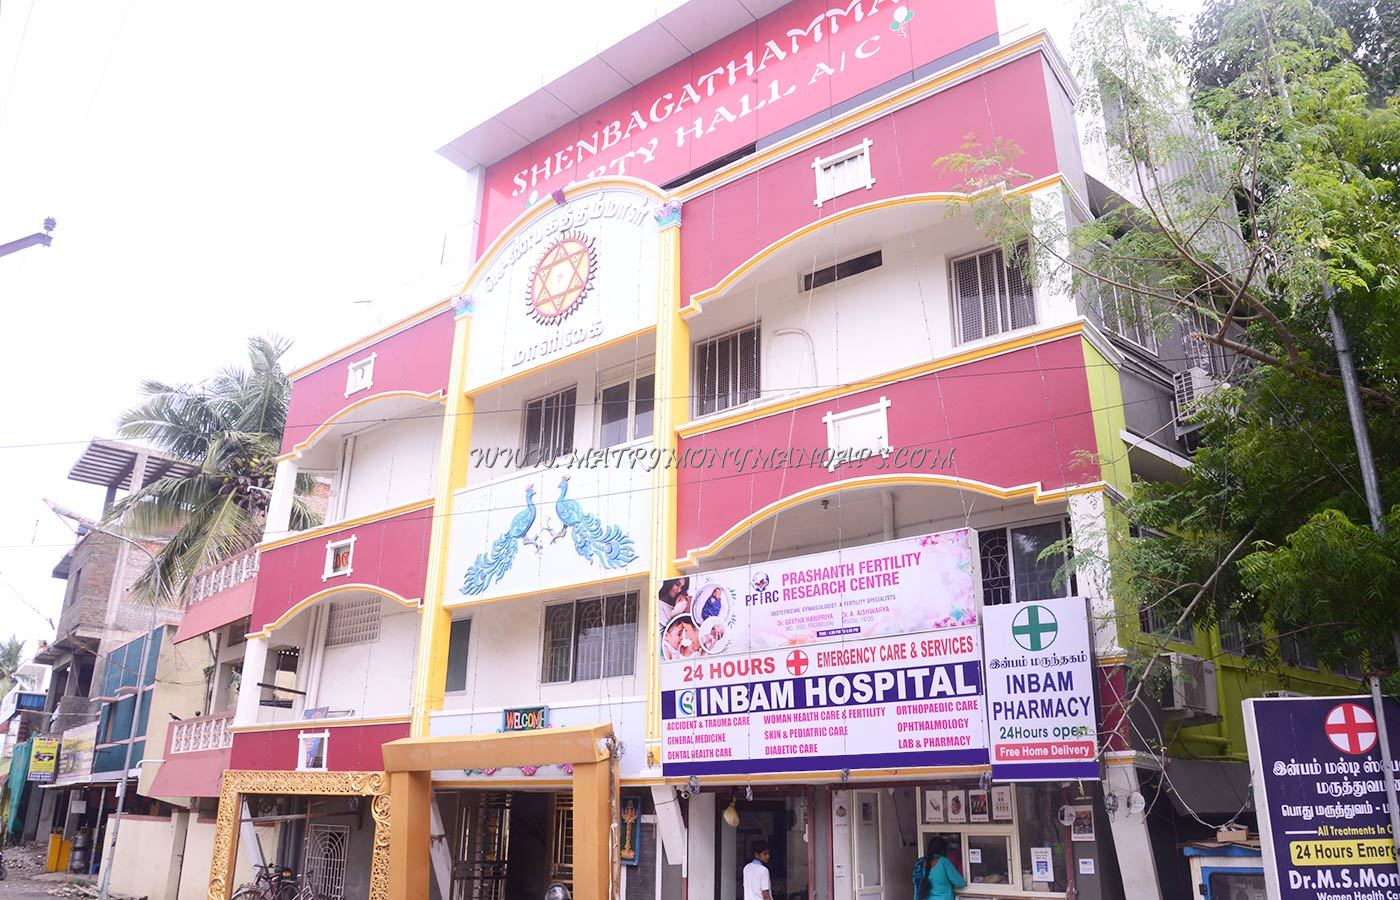 Find the availability of the Shenbagathammal Party Hall (A/C) in Pallikaranai, Chennai and avail special offers